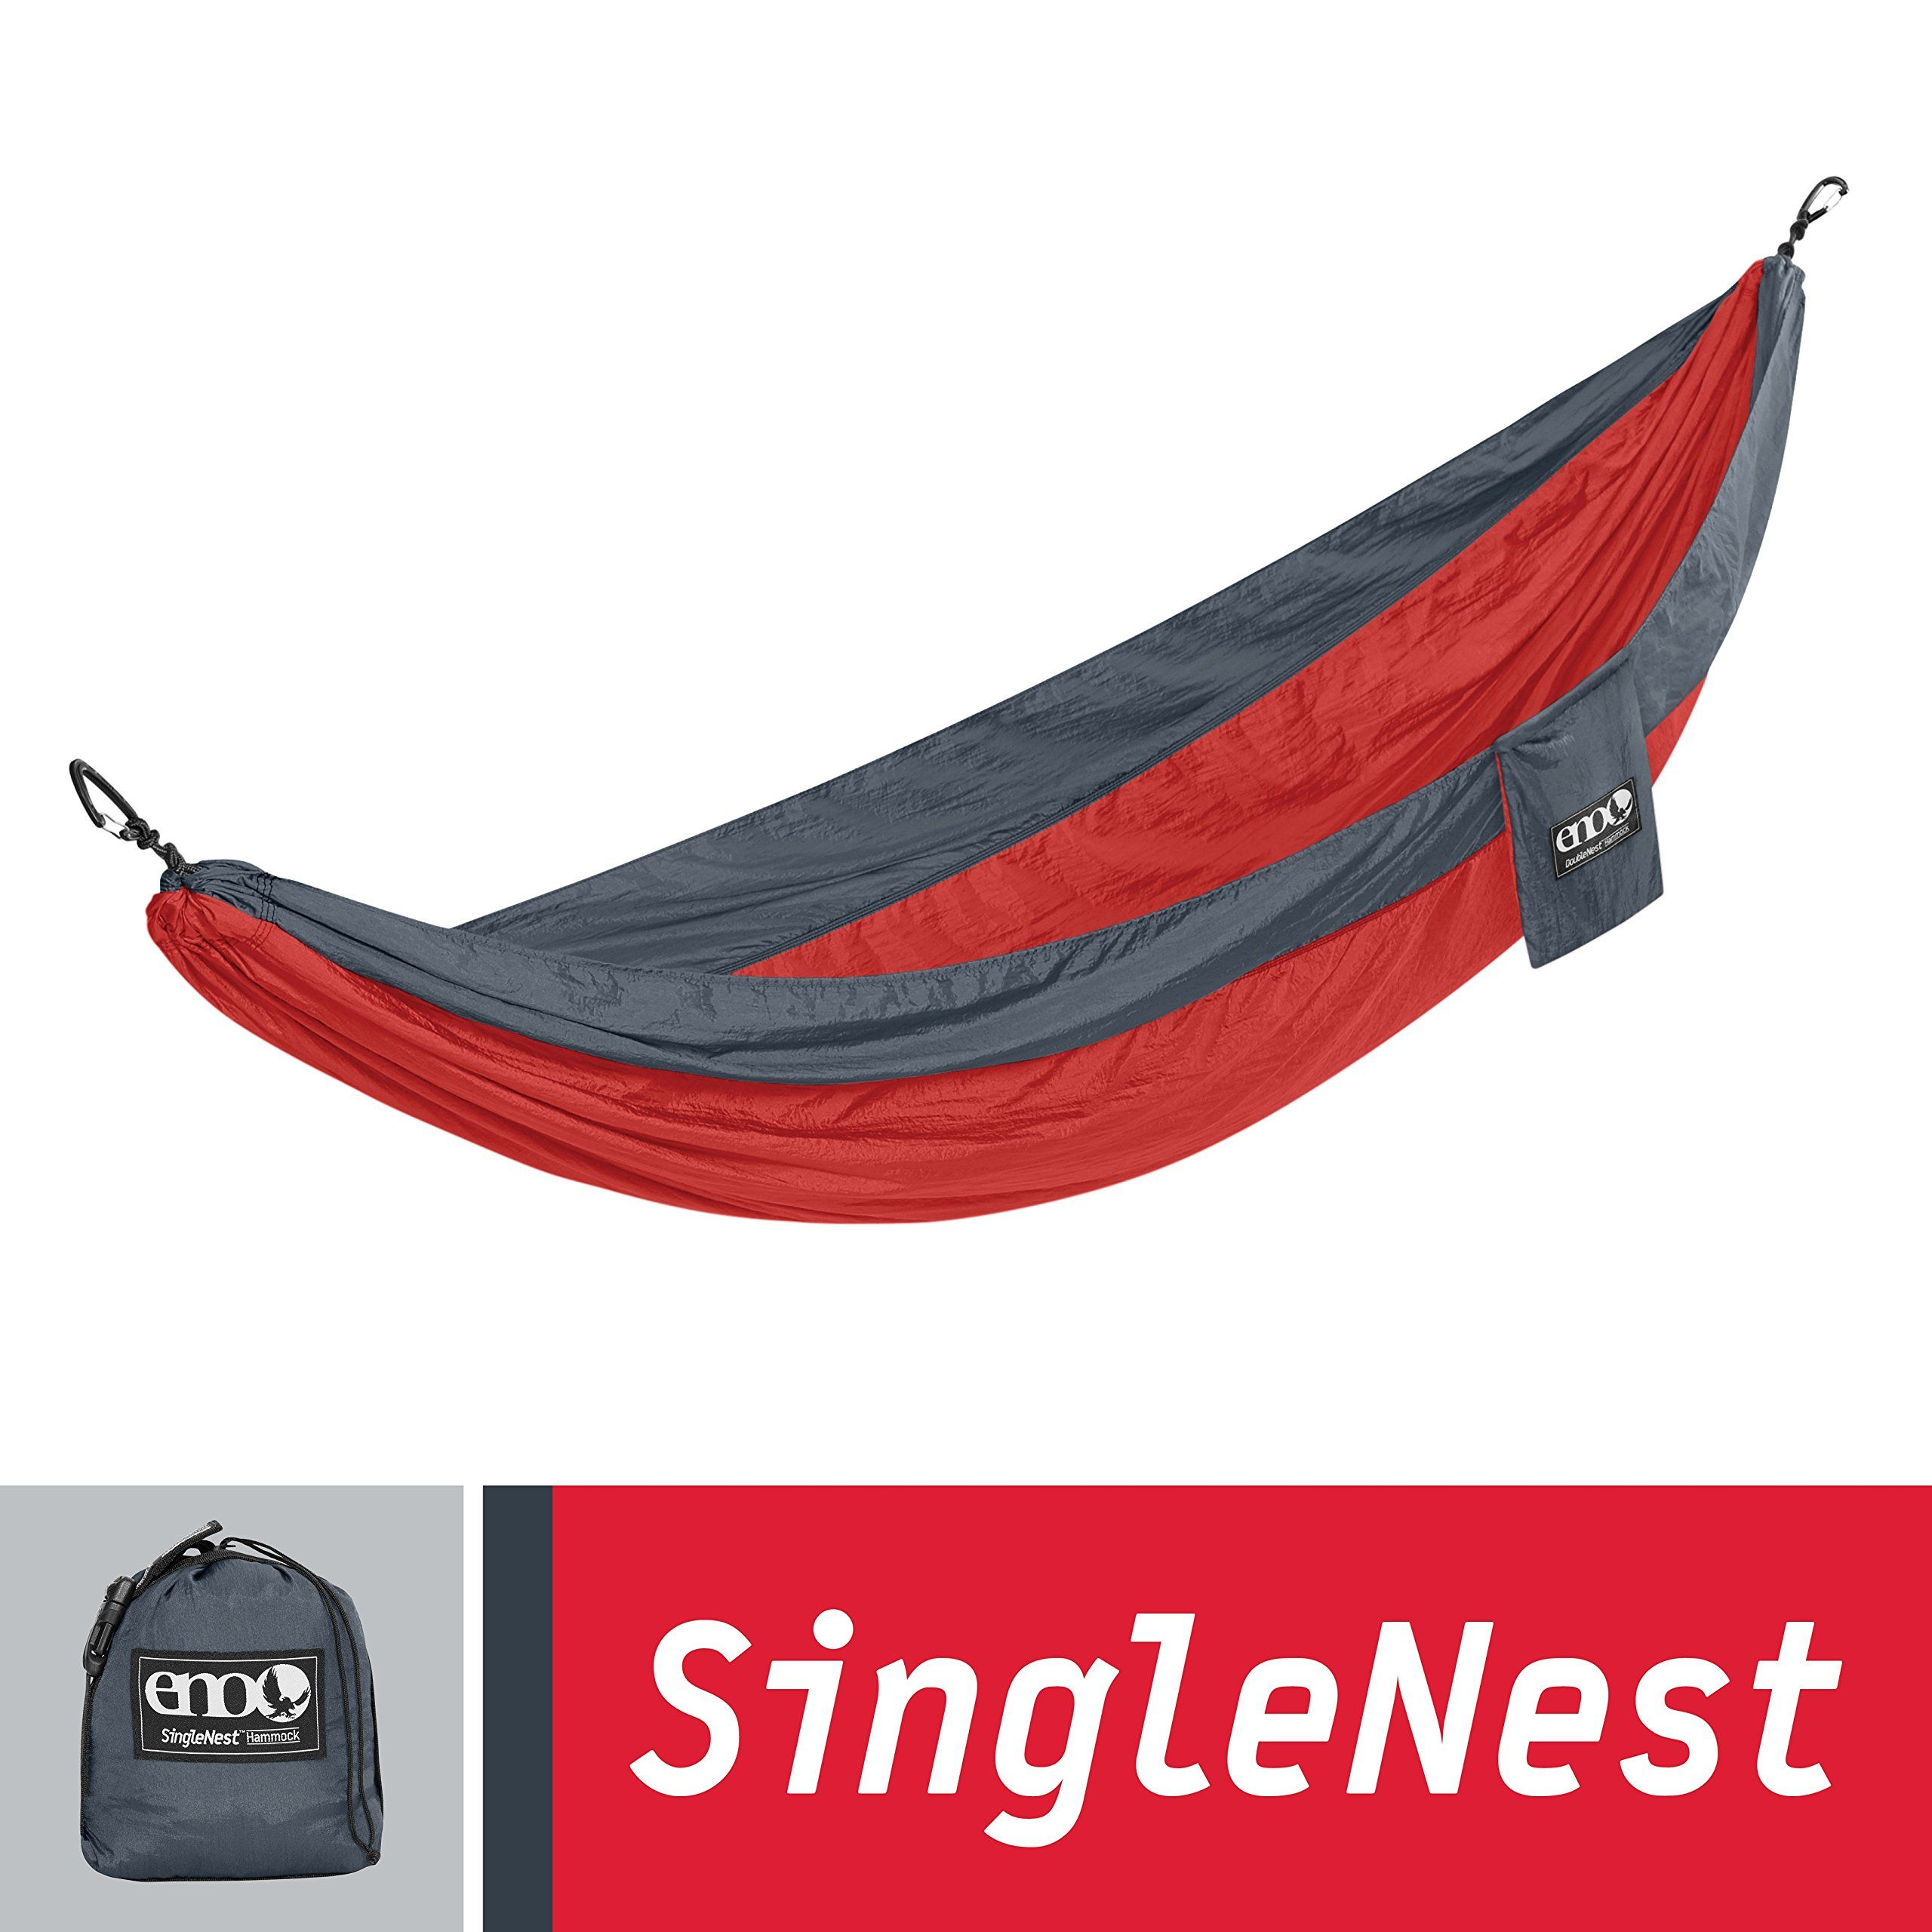 au coco and sling stand fhb b hammock of best with co deluxe graphics atlas eno rh fresh by singlenest straps drh oztrail